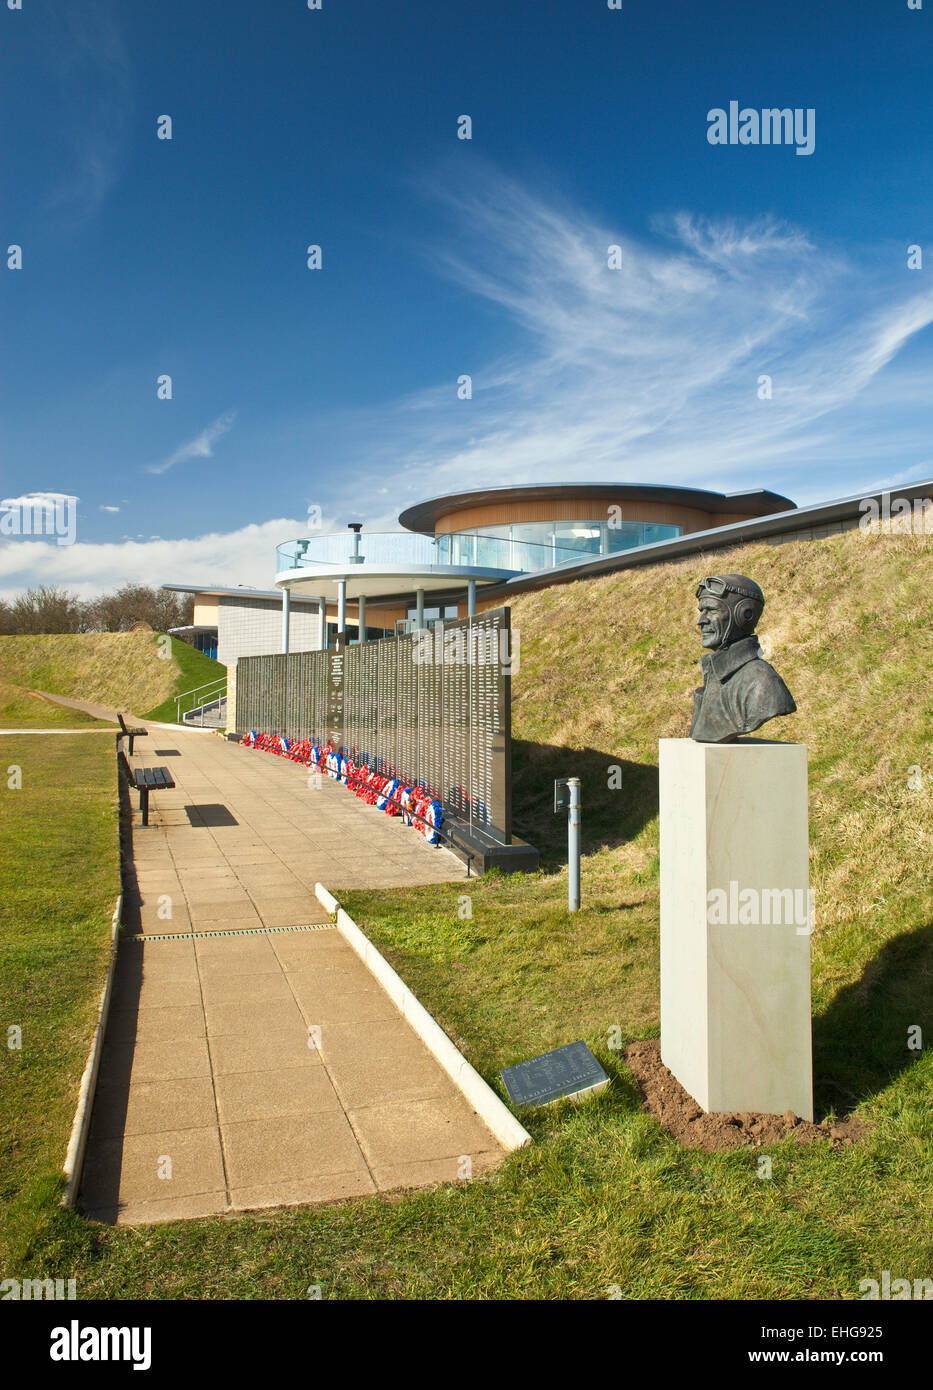 Battle of Britain National Memorial, and new visitor center The Wing. Capel-le-Ferne. - Stock Image